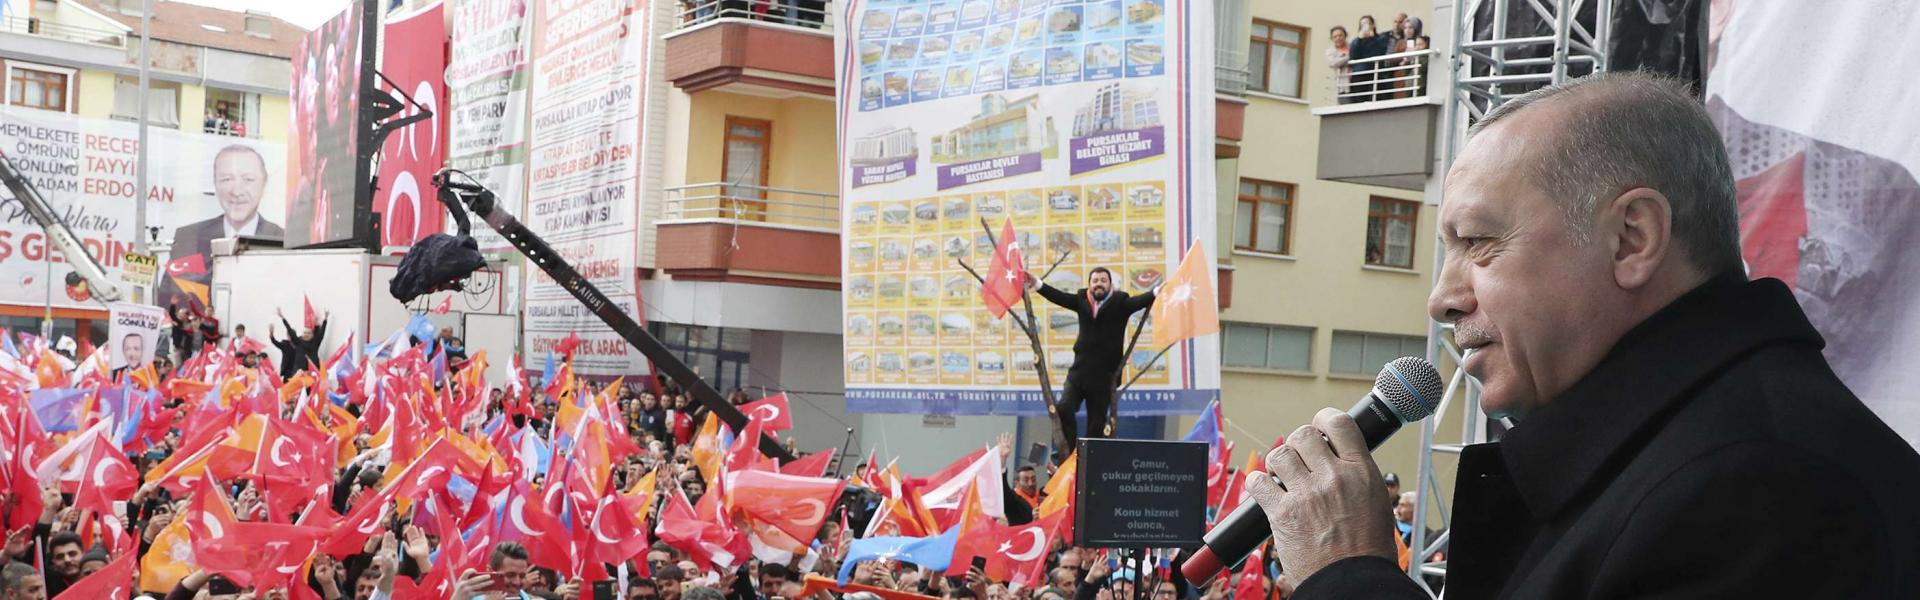 Turkey's President Recep Tayyip Erdogan addresses the supporters of his ruling Justice and Development Party, AKP, during a rally in Ankara, Turkey, Wednesday, March 13, 2019. (Presidential Press Service via AP, Pool)